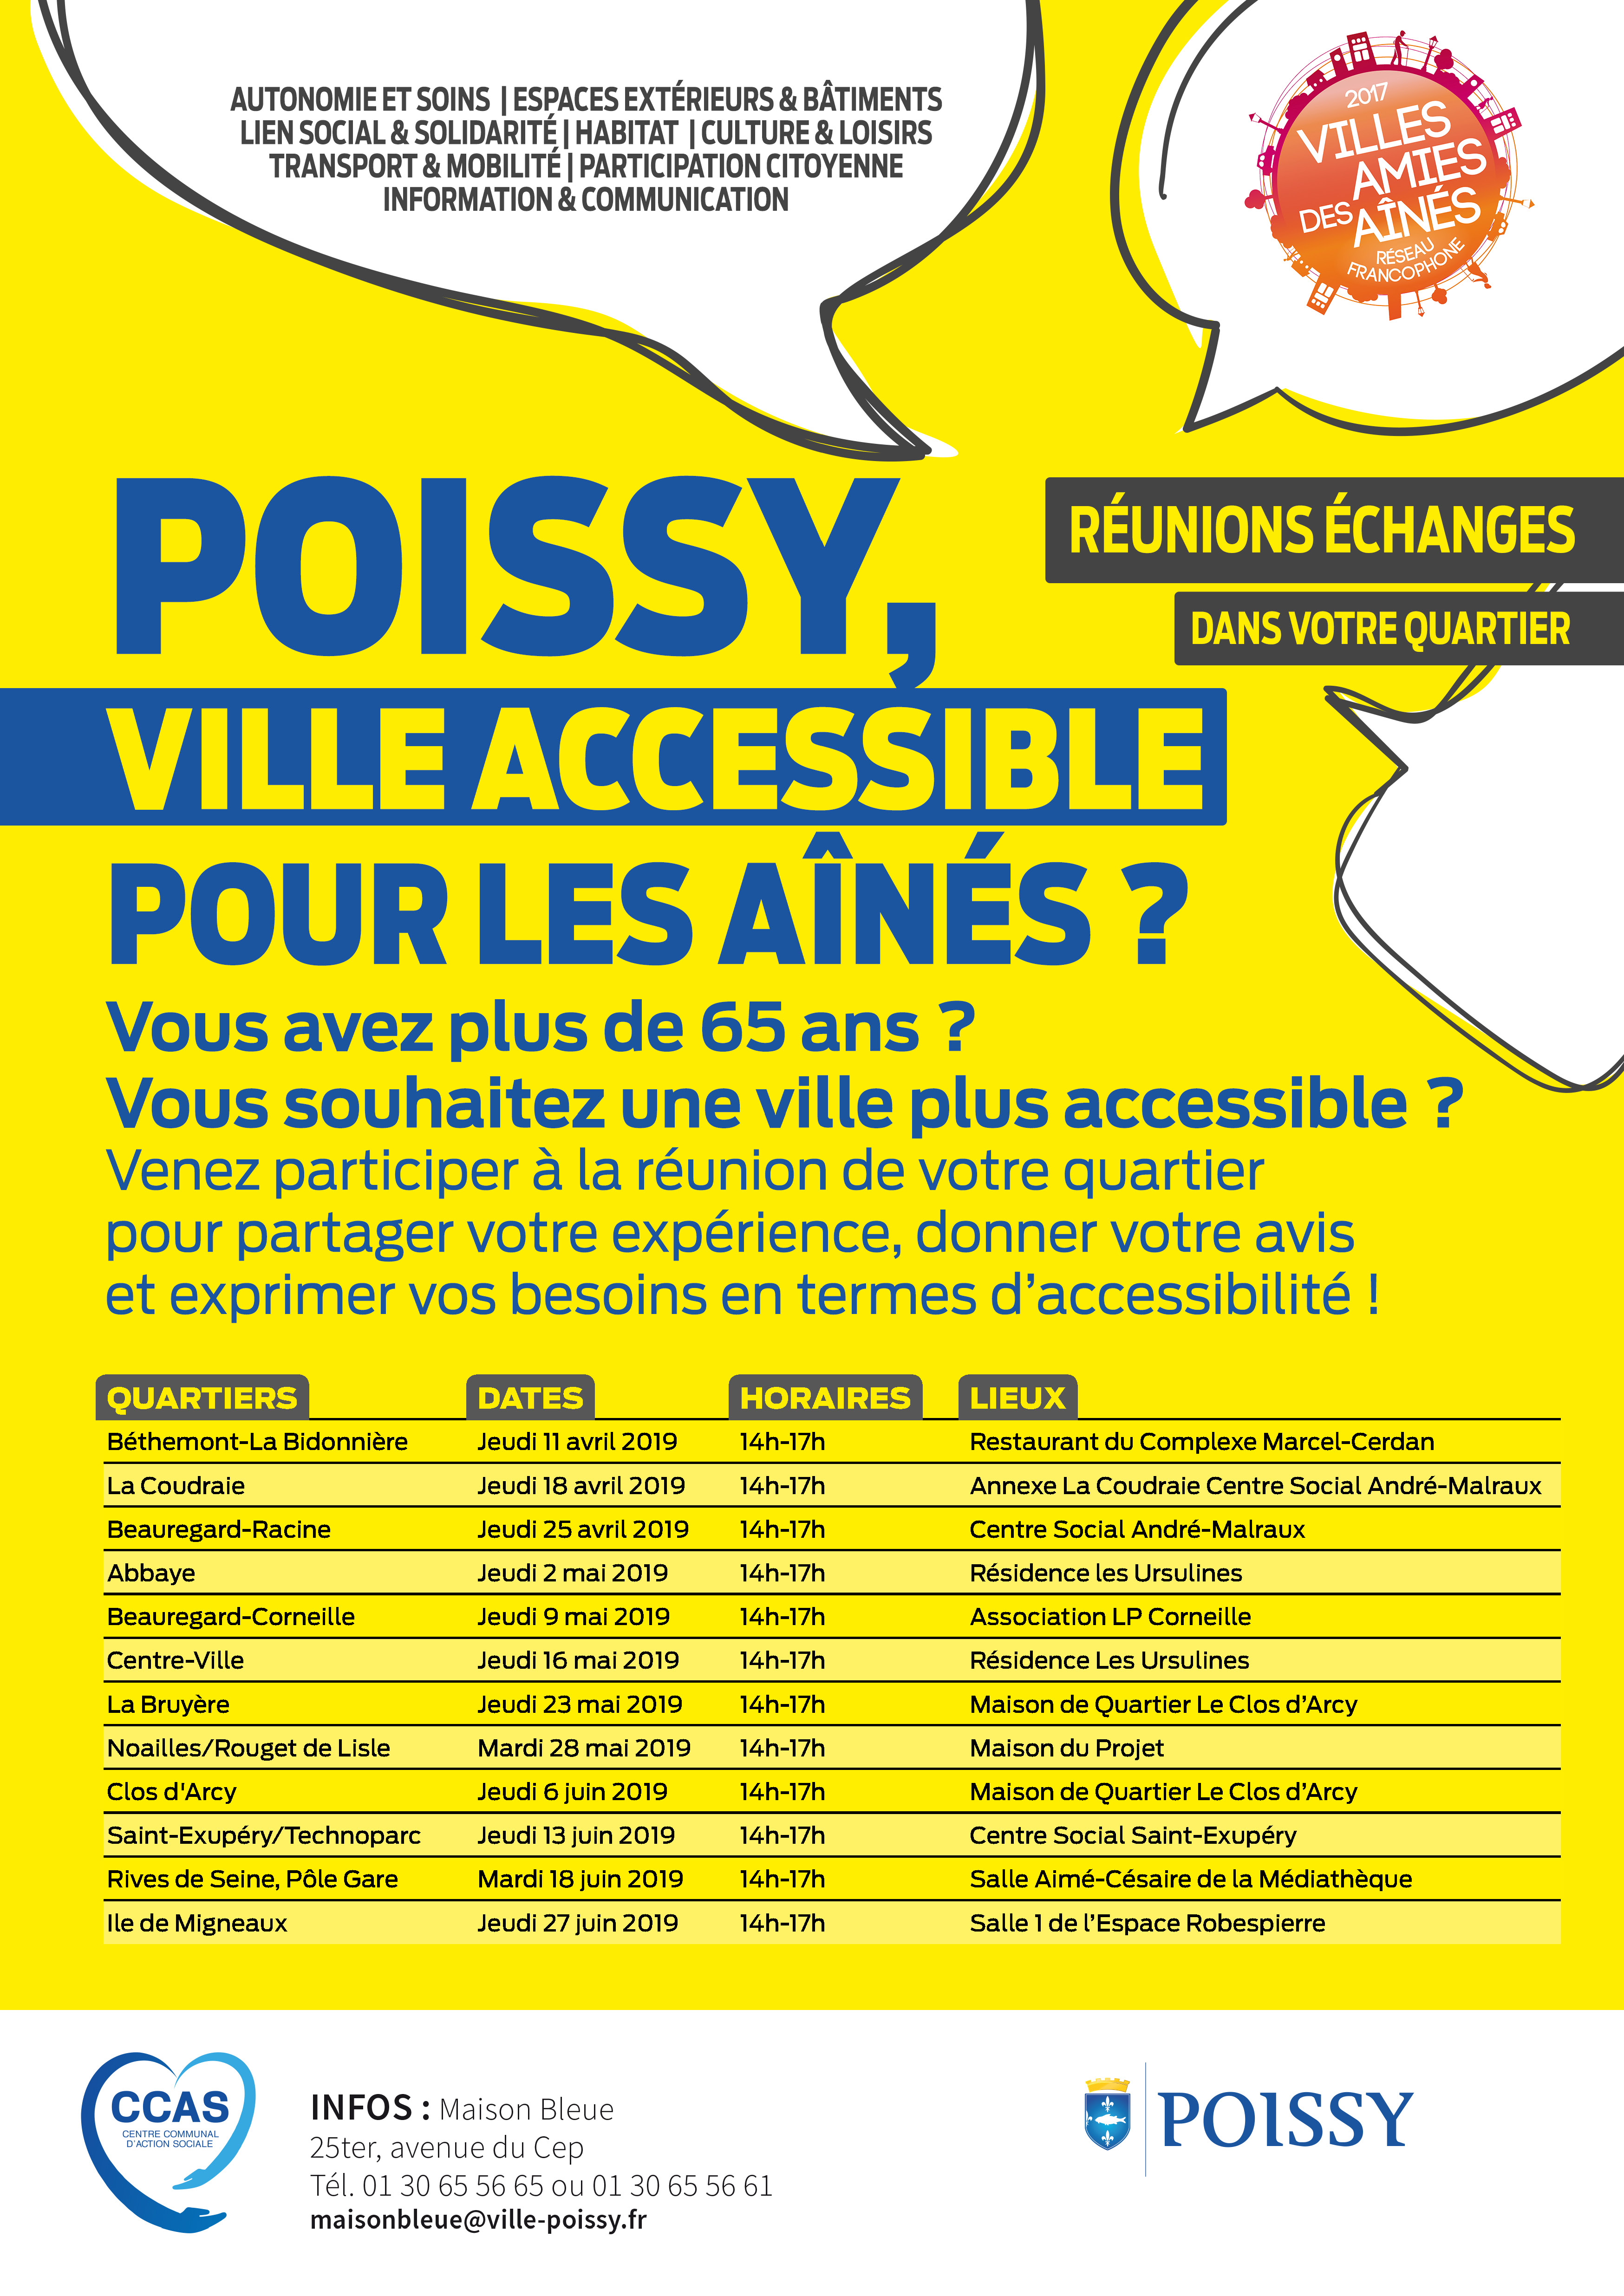 AffA3 Poissy ville accessible